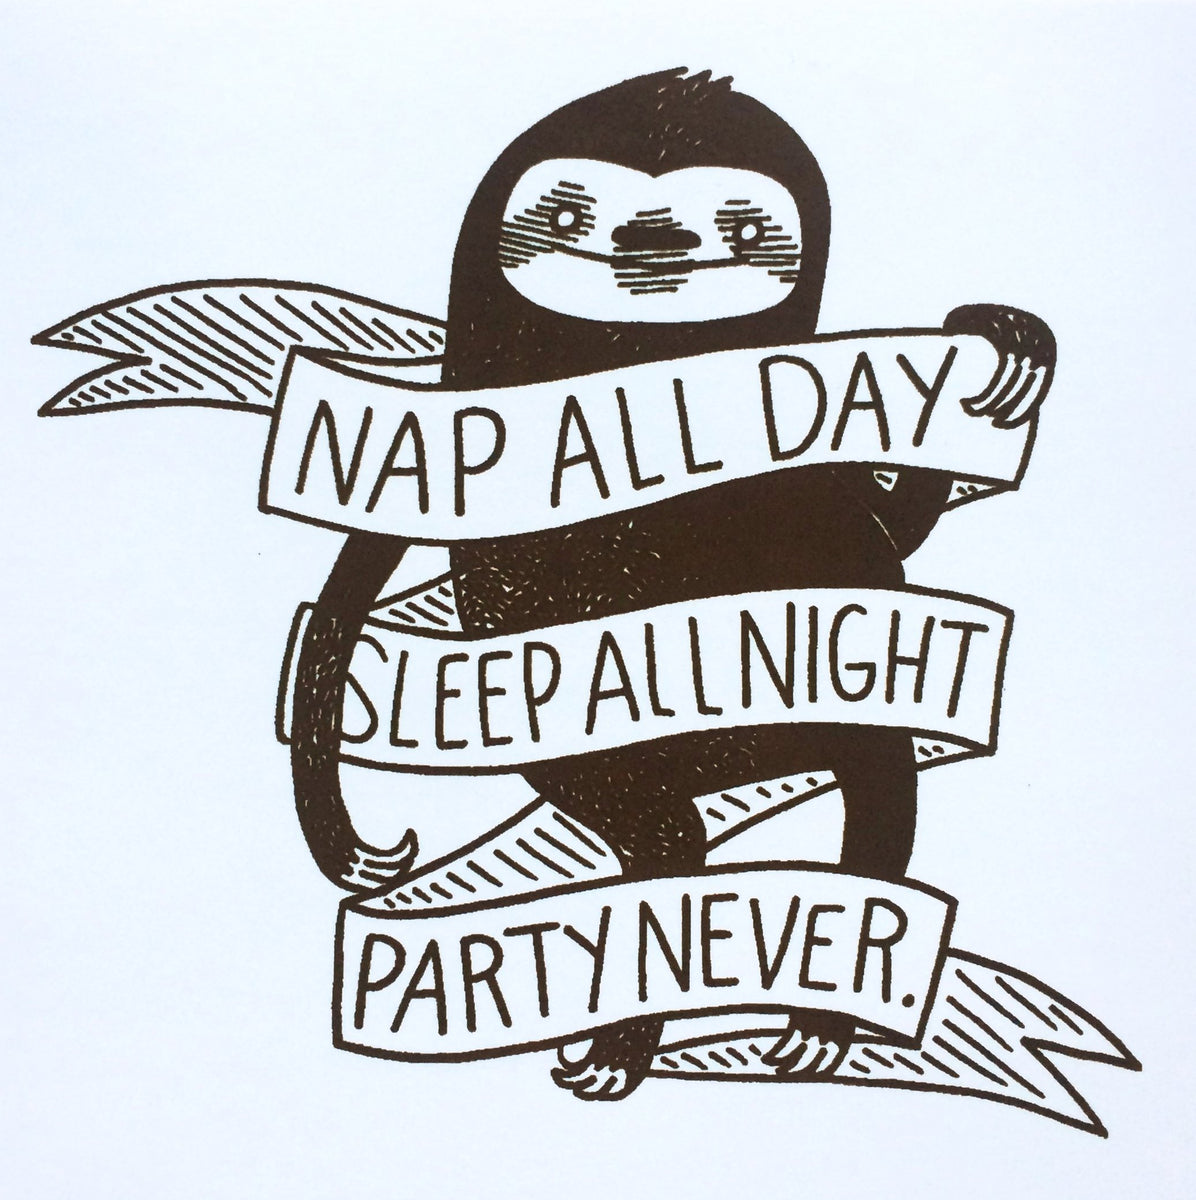 Sticker nap all day sleep all night party never sloth by nation of silver sprocket